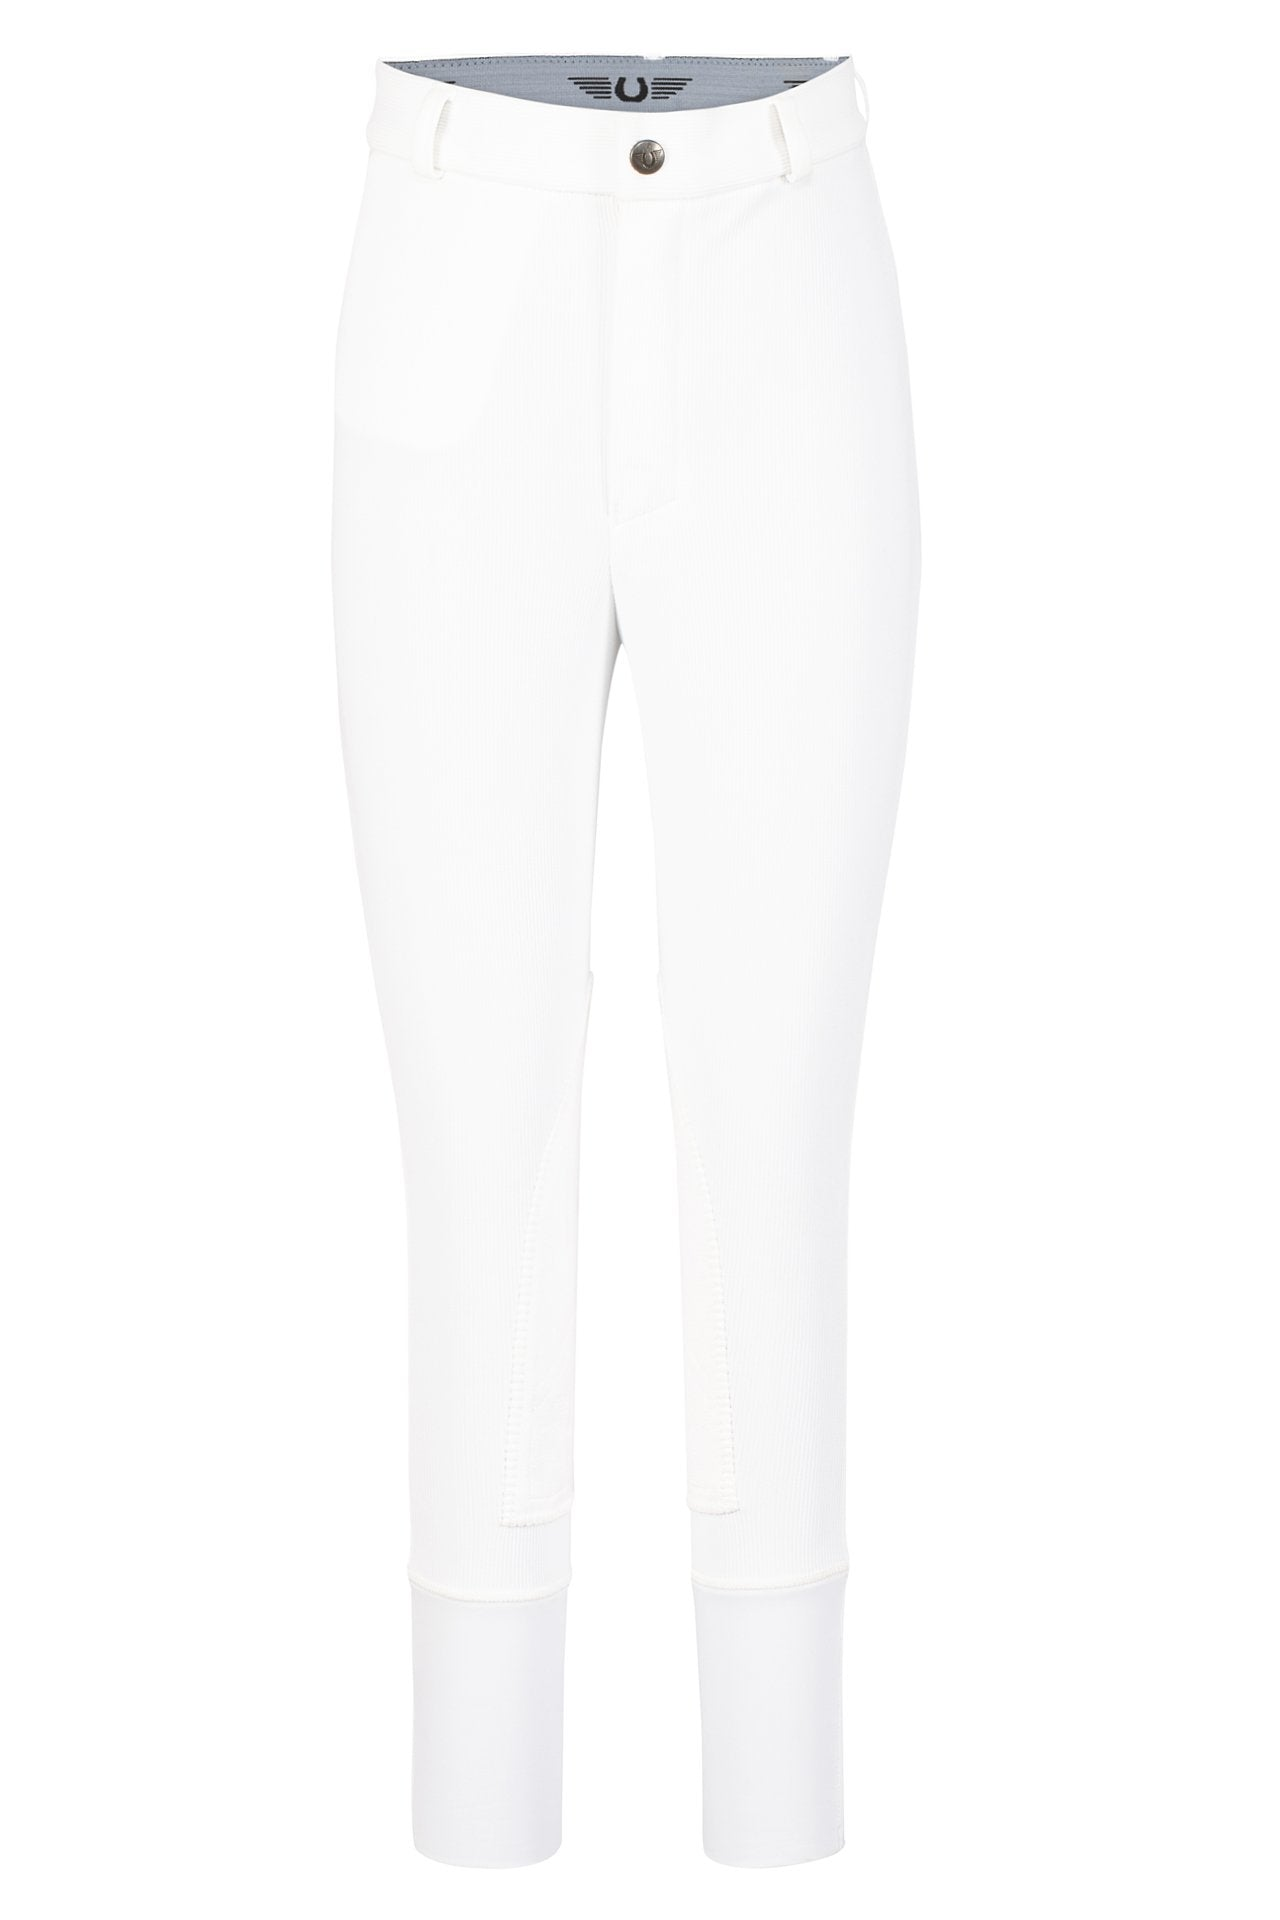 Children's Ribb Knee Patch Breeches - TuffRider - Breeches.com